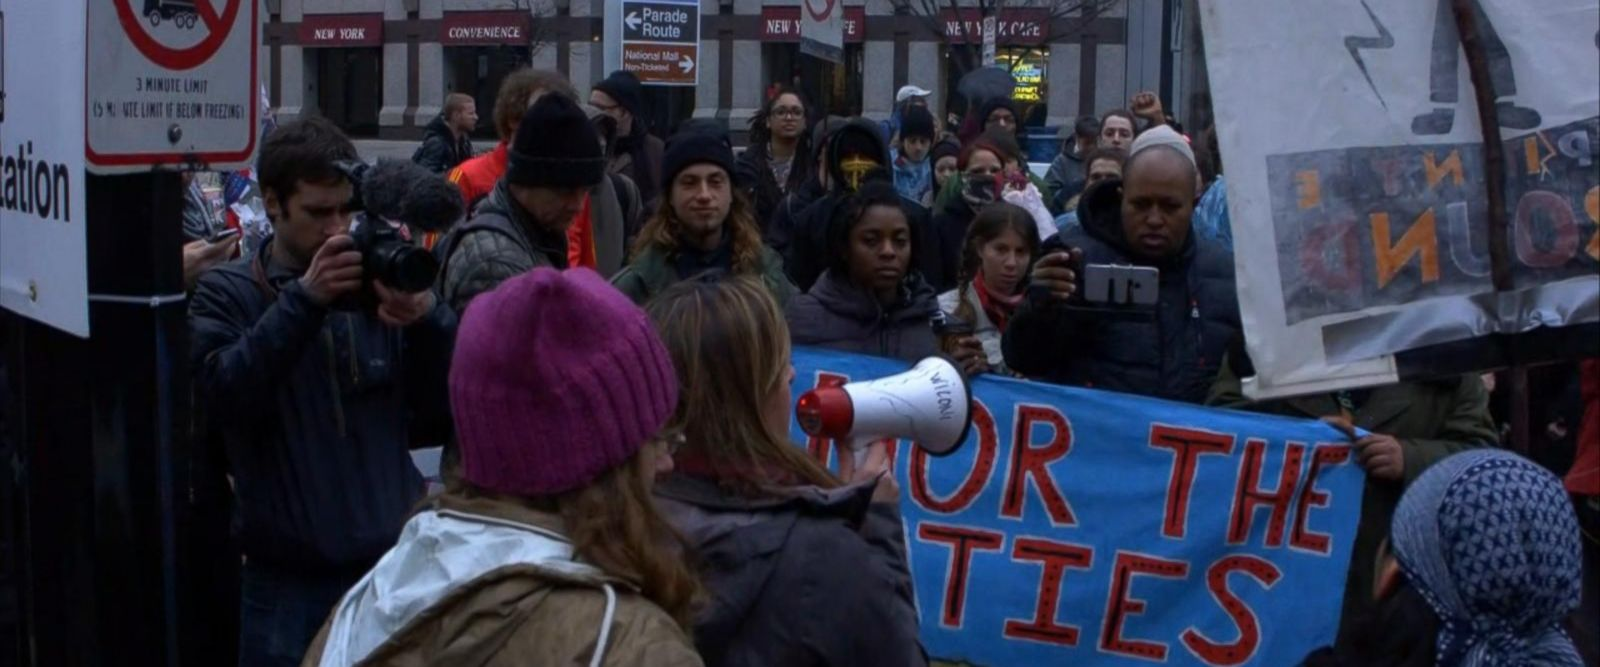 VIDEO: Inauguration Day Protests Underway in Washington, D.C.